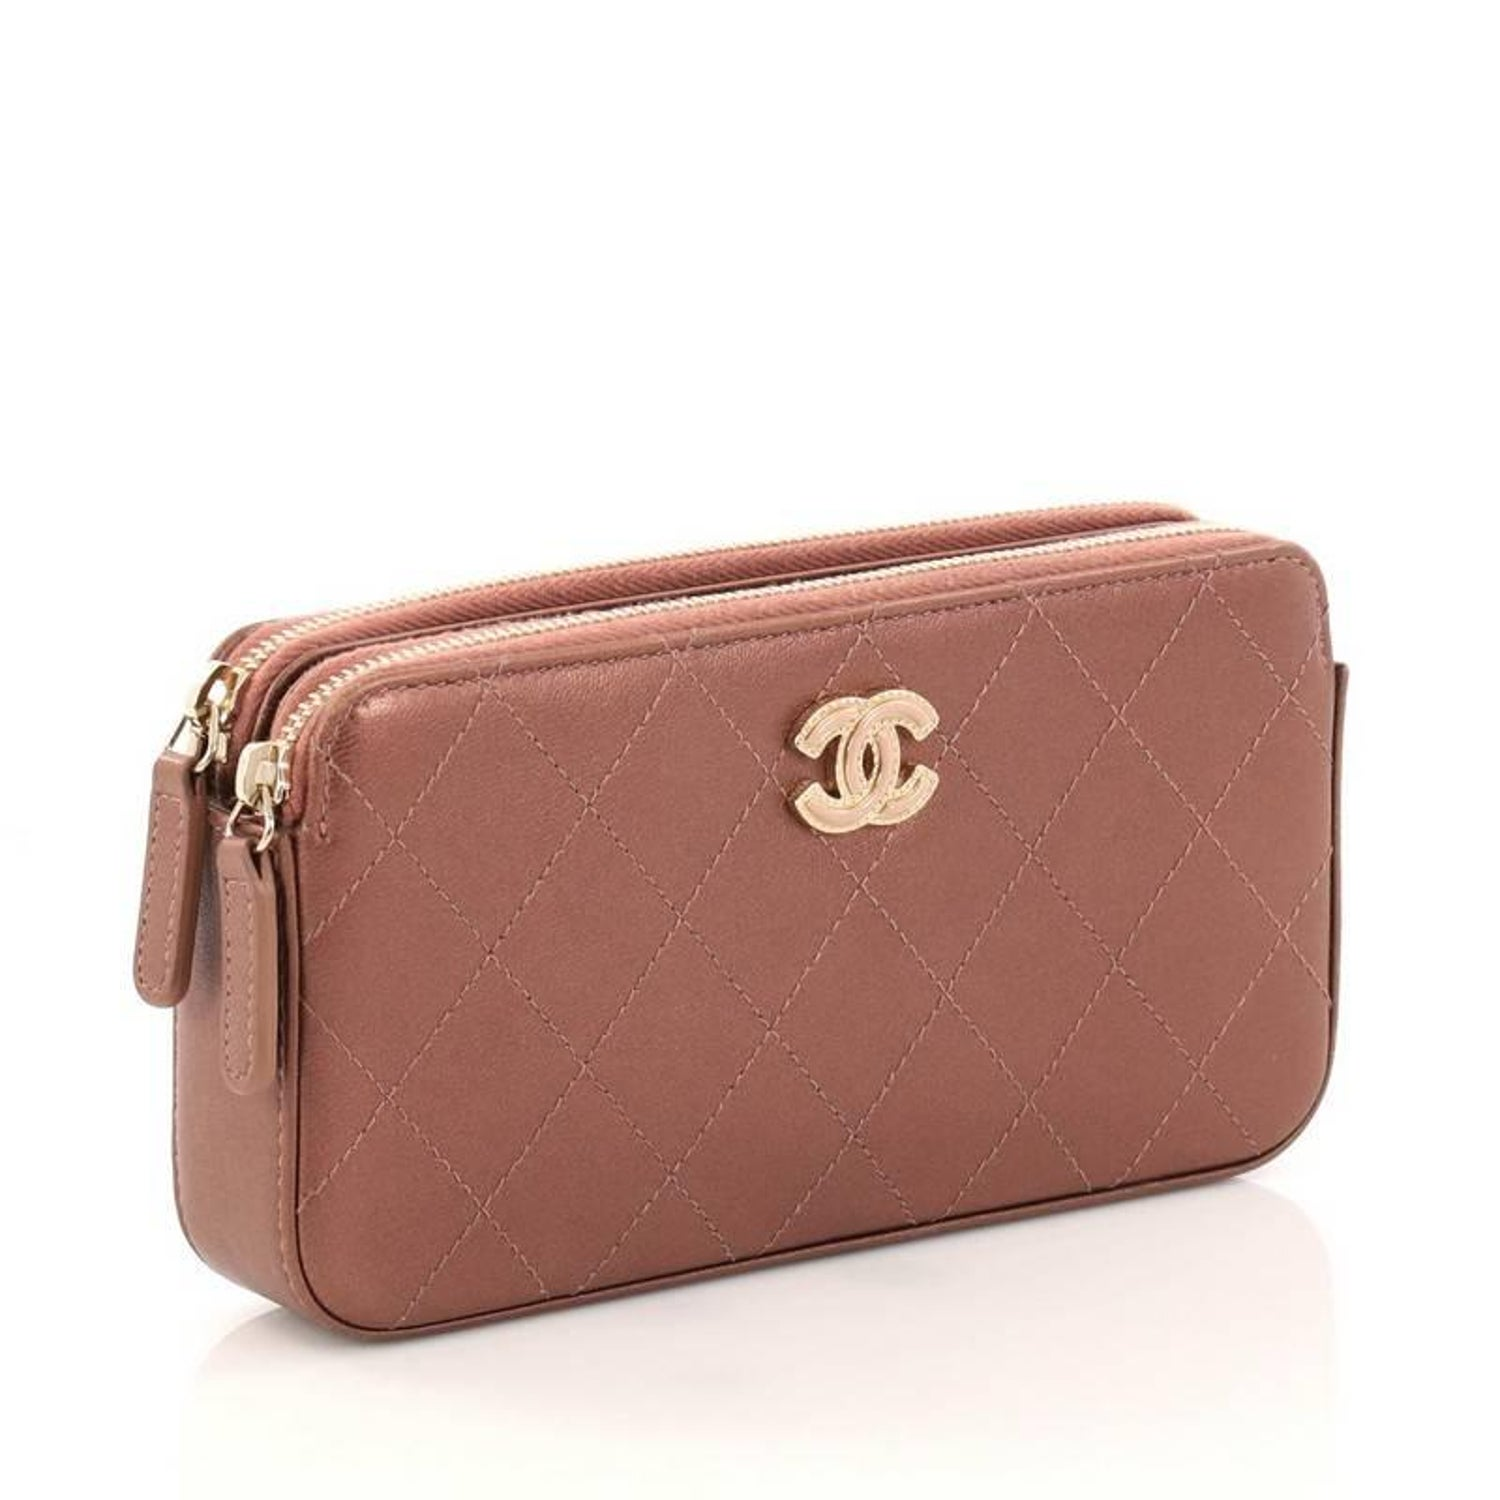 570f3ce63002 Chanel Double Zip Clutch with Chain Quilted Lambskin at 1stdibs